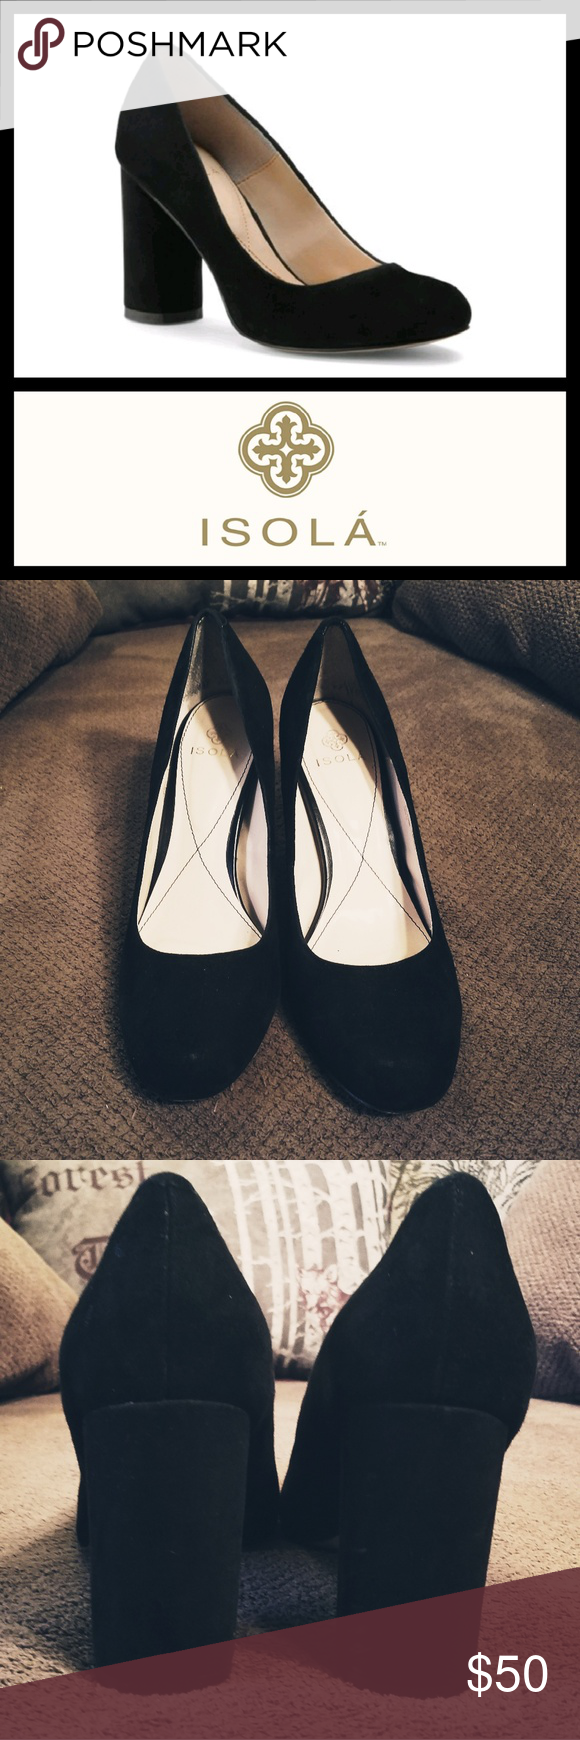 8829a26b4590 ISOLA Eleni Black King Suede Pumps 9 6214721 High society black suede pumps  with a 3 1 4